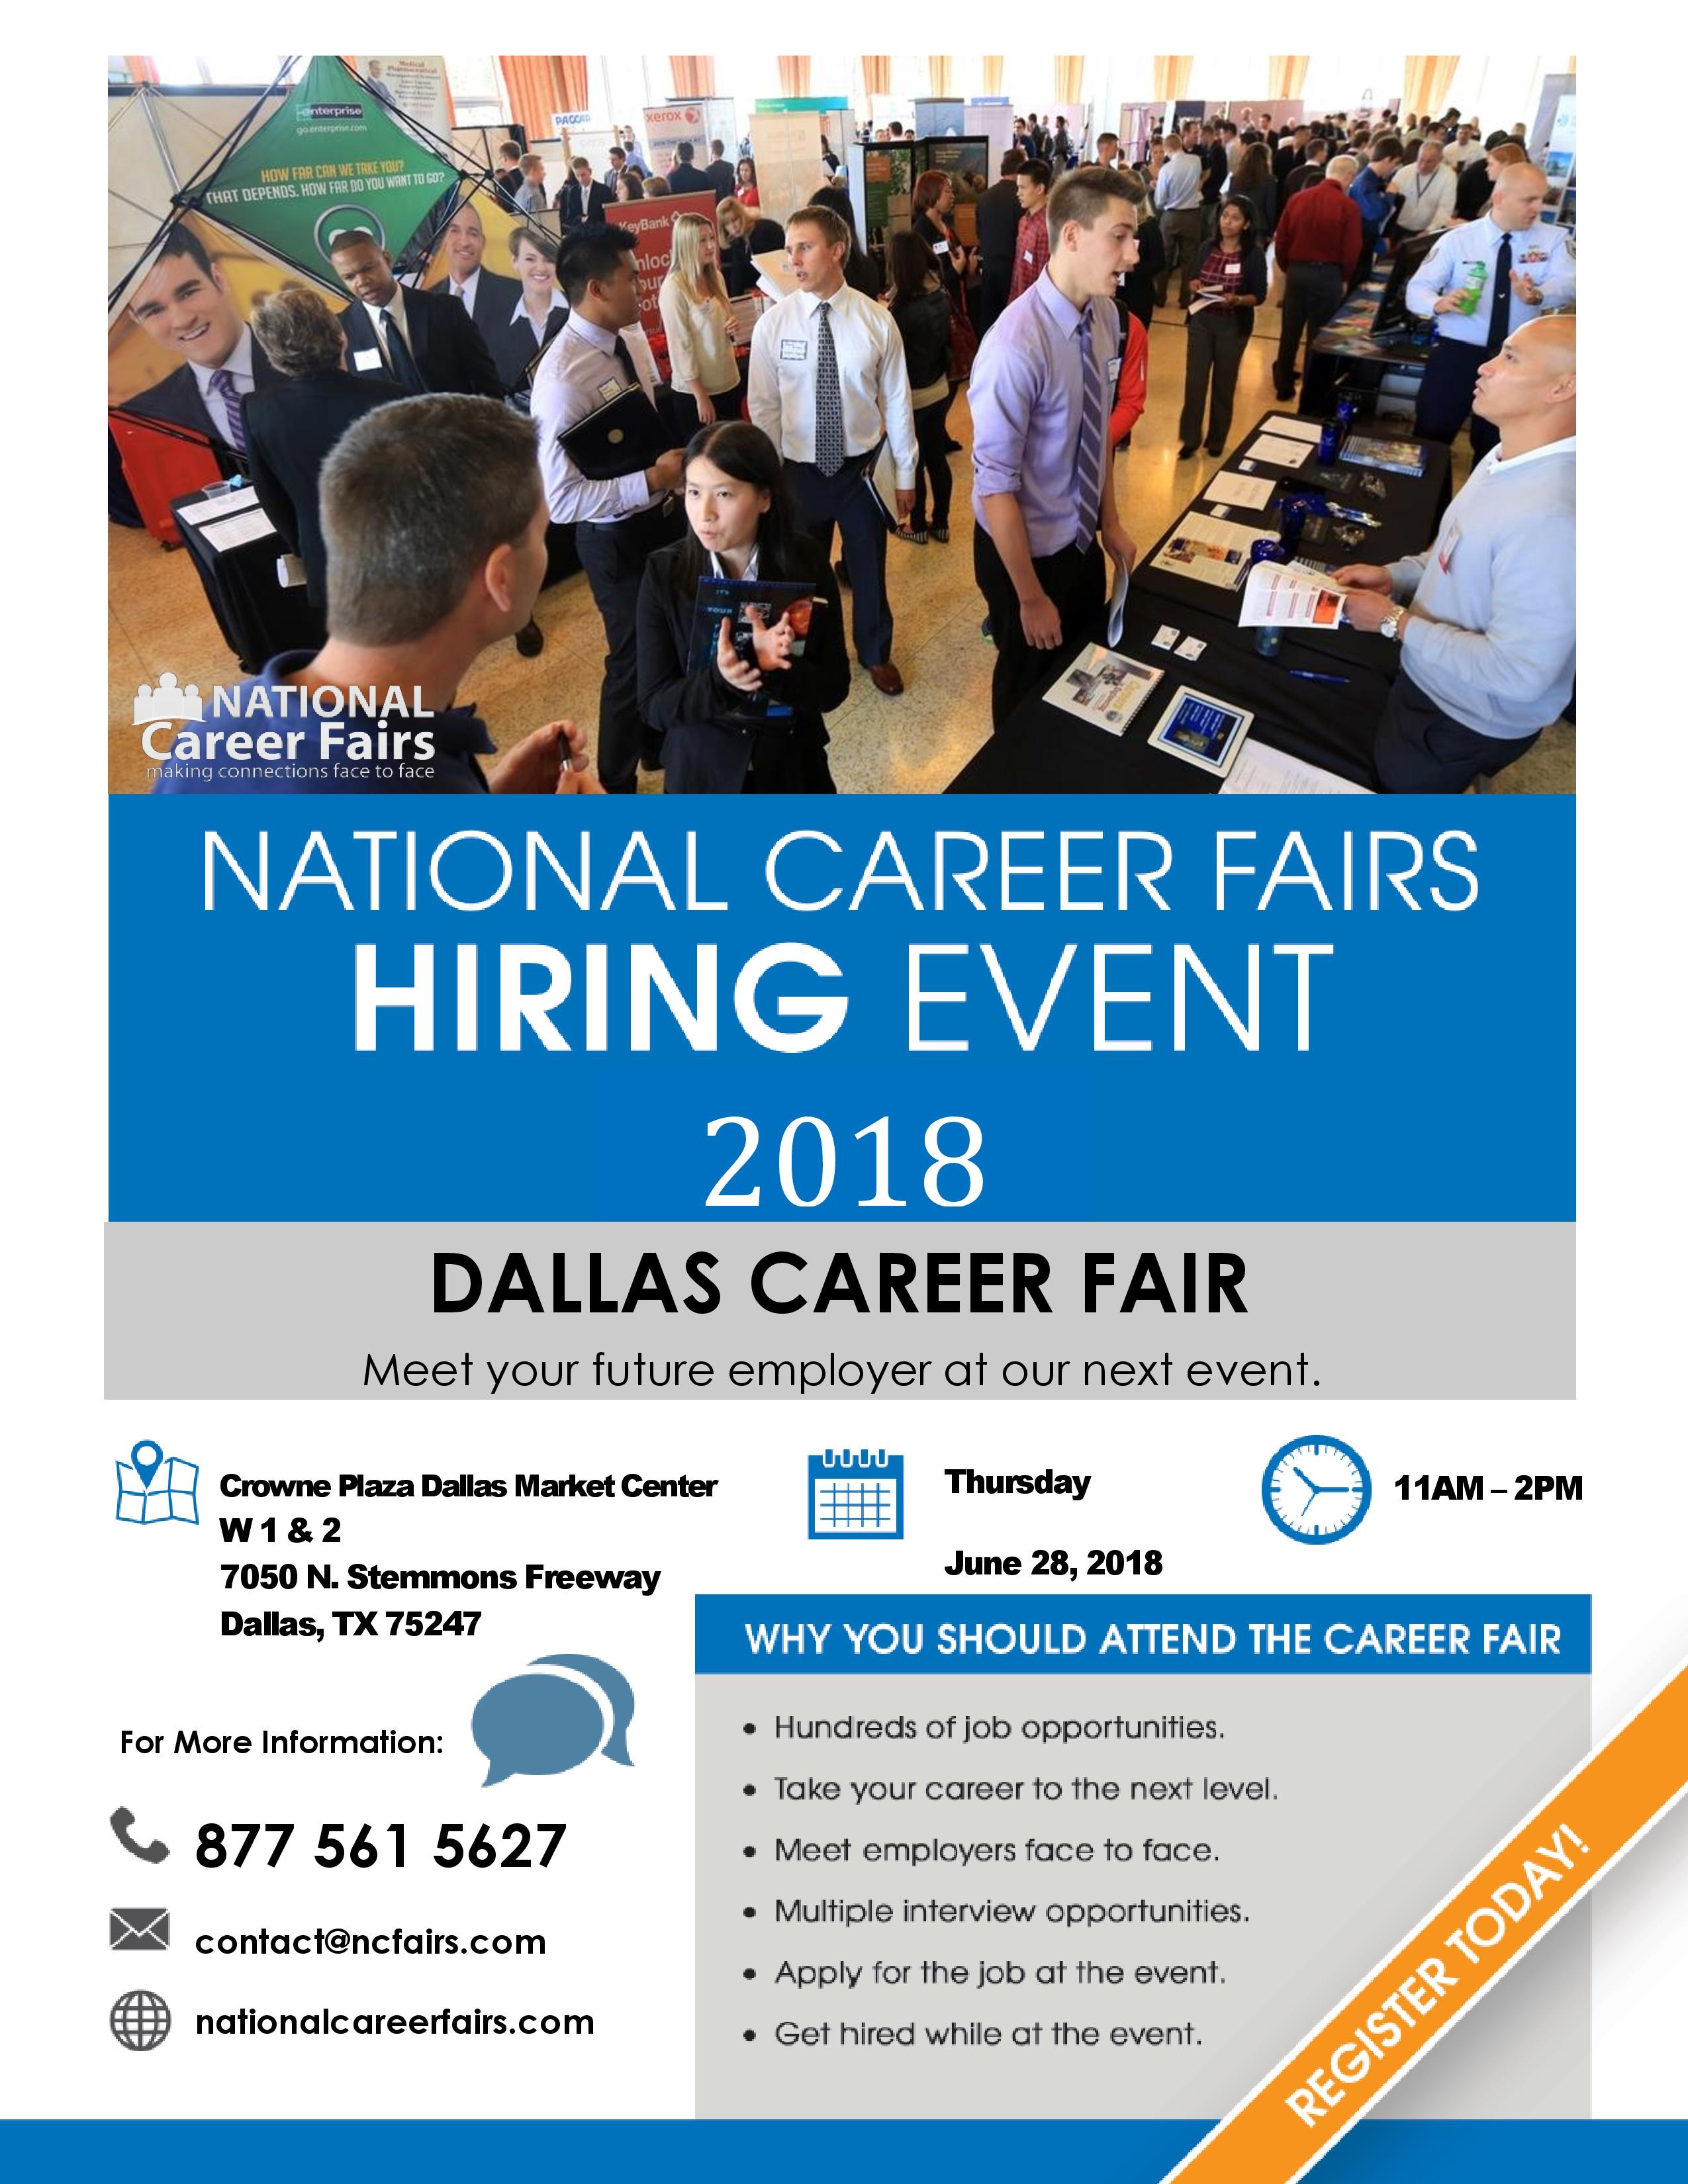 National Career Fairs Hiring Event On June 28th